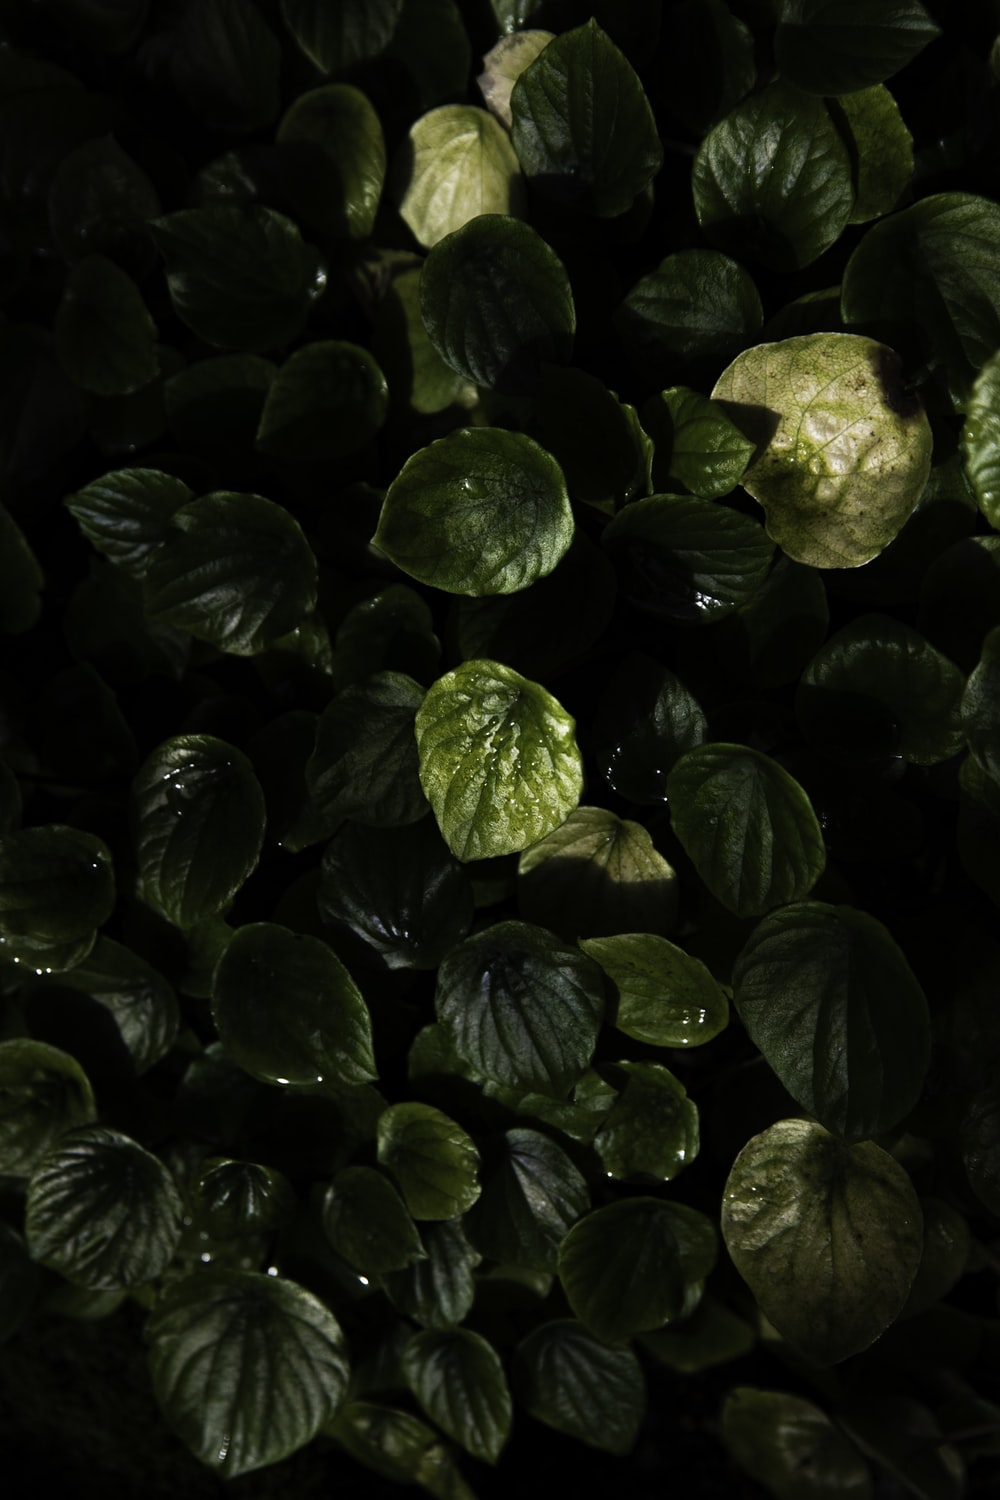 low-light photo of green-leafed plant